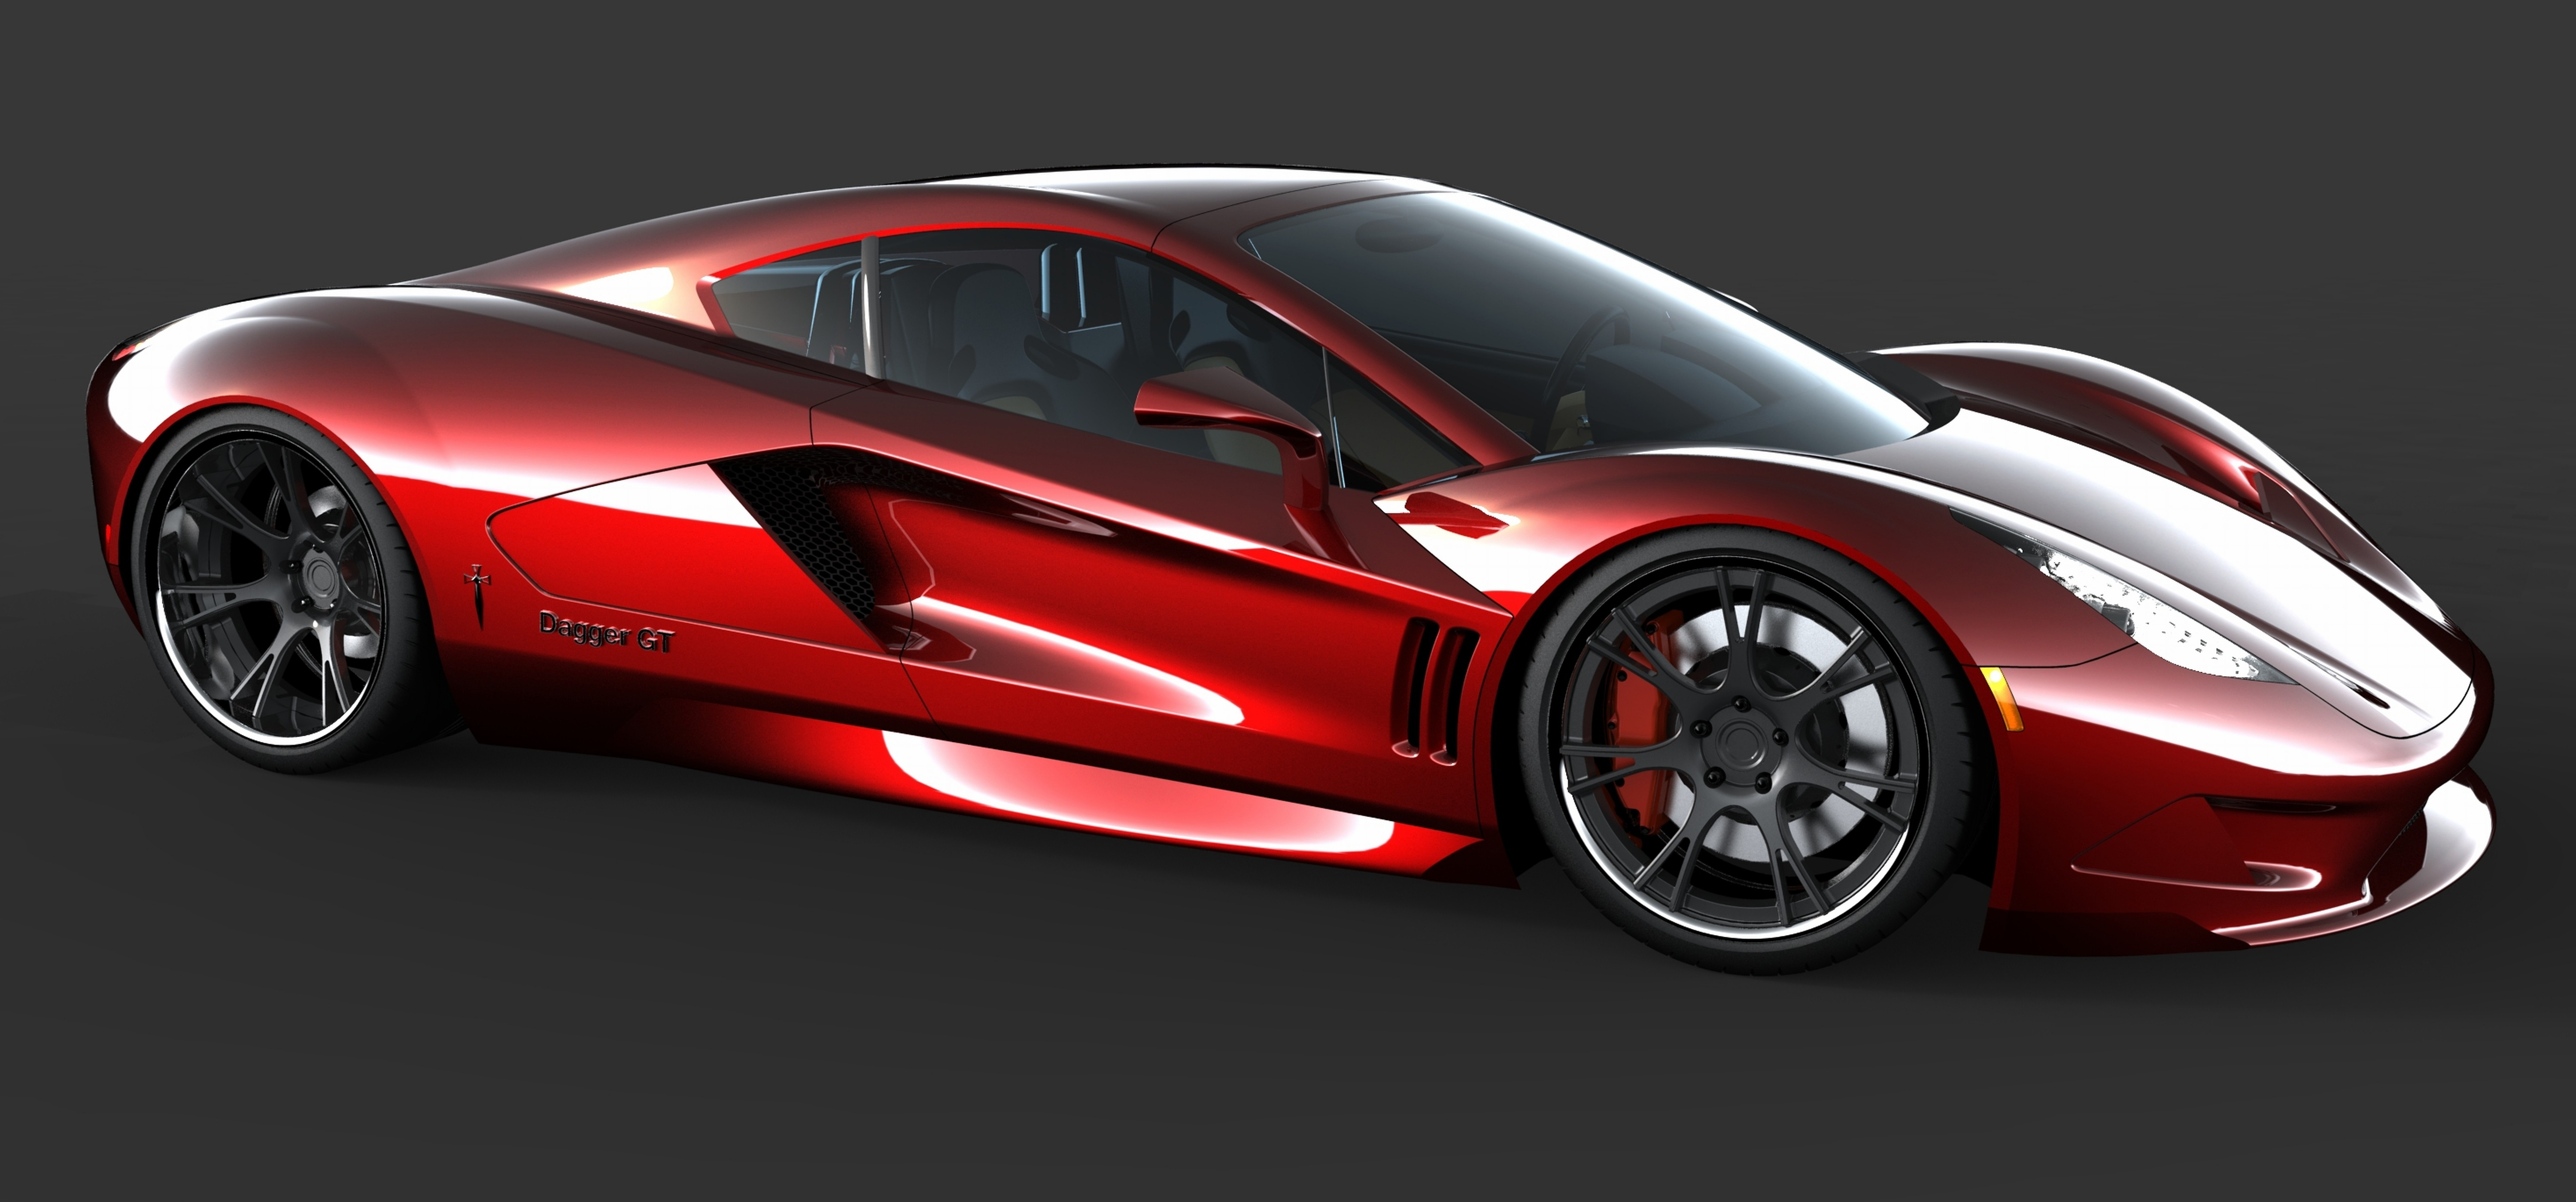 Transtar Racing Dagger Gt Supercar Wallpapers Pictures To Pin On